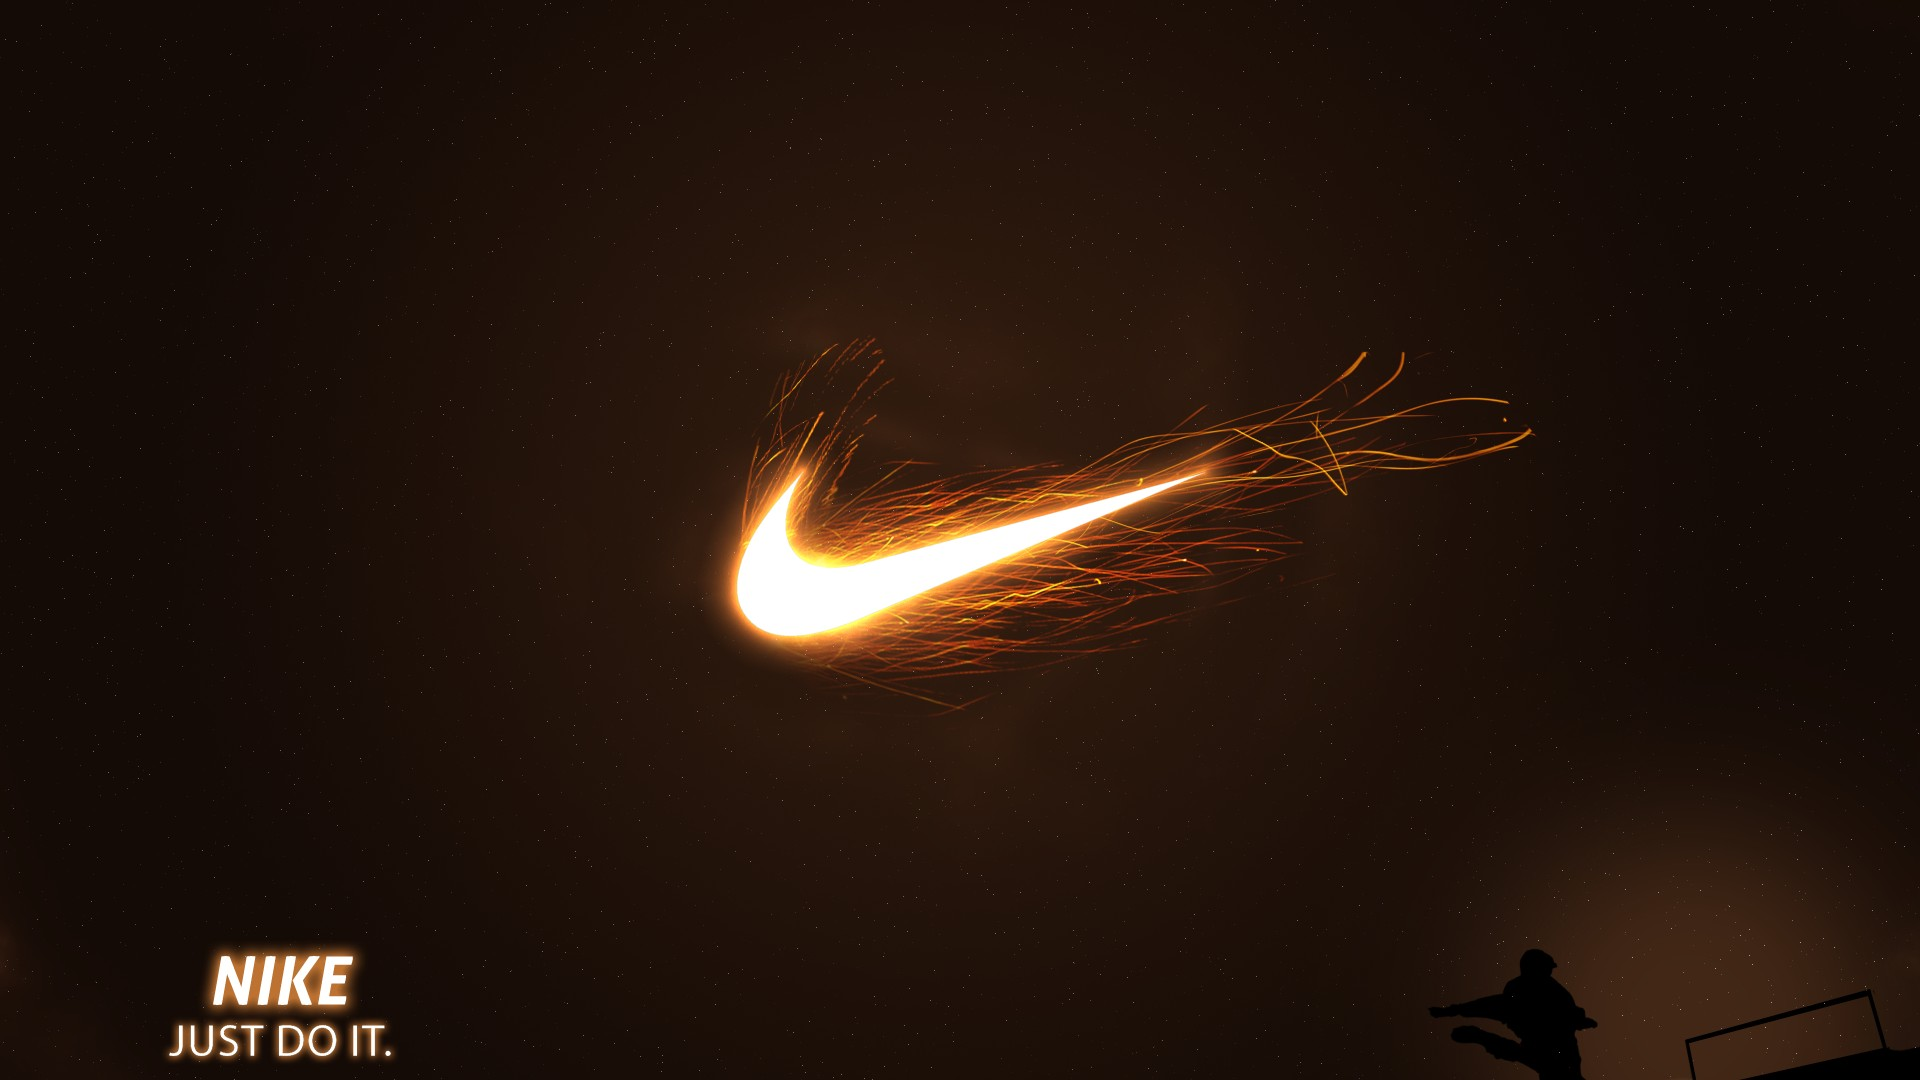 Nike Just Do It Fire Football 1920x1080 HD Sport 1920x1080